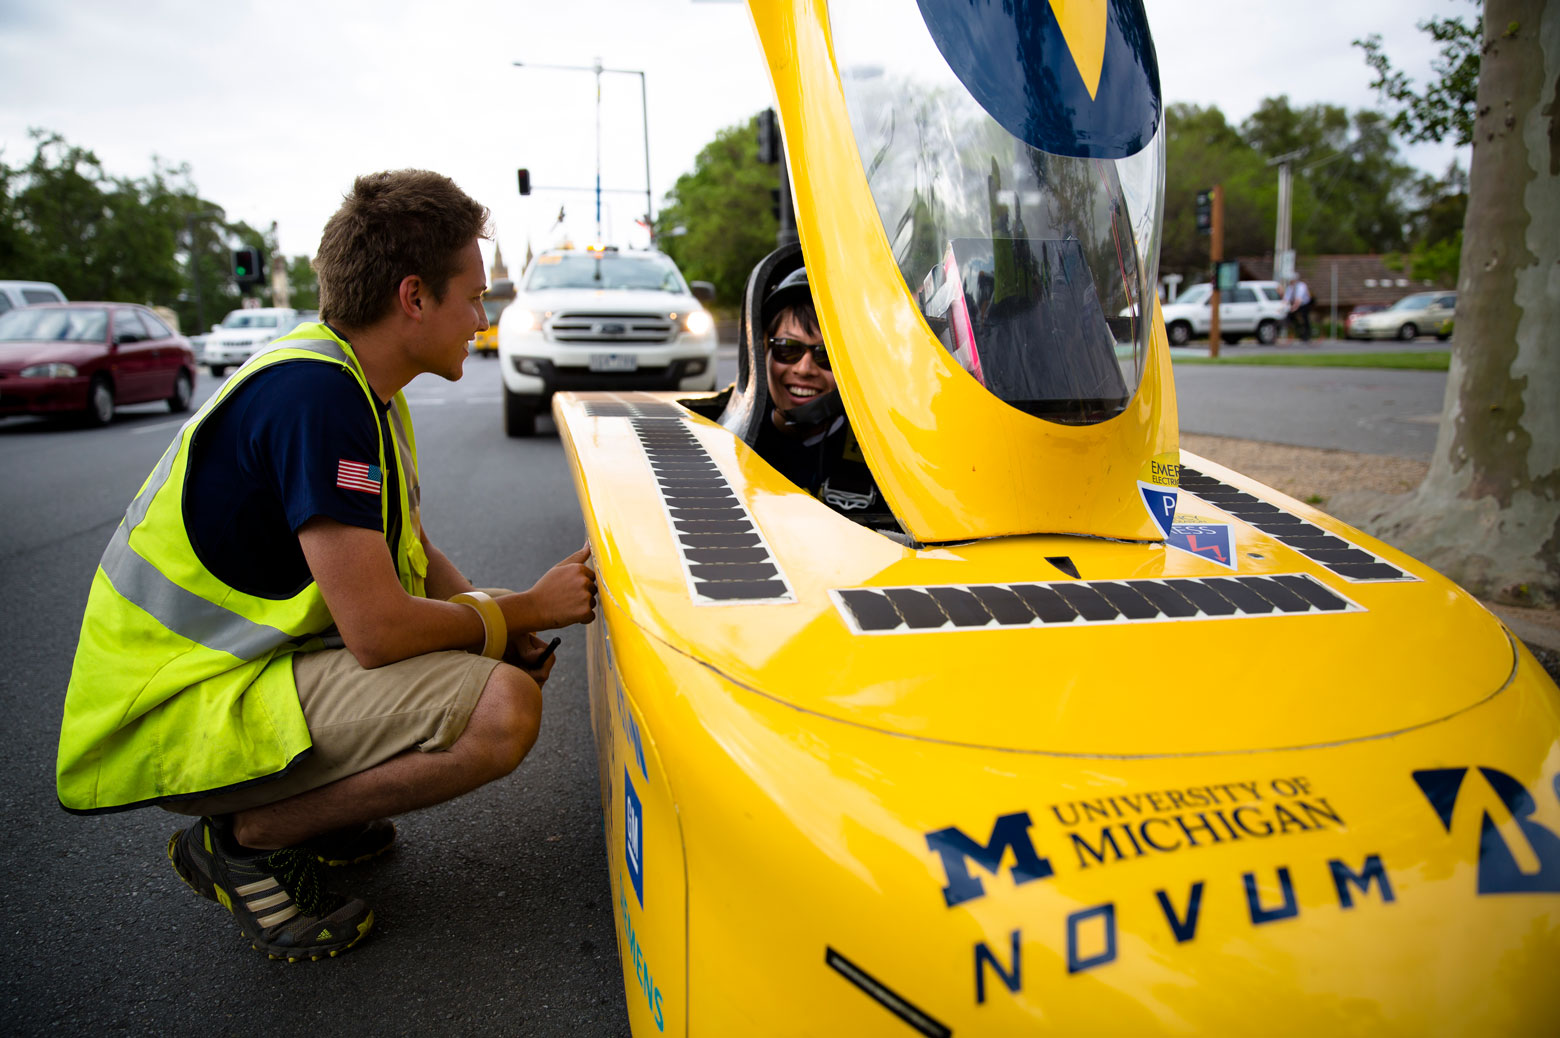 Student congratulates driver in solar car